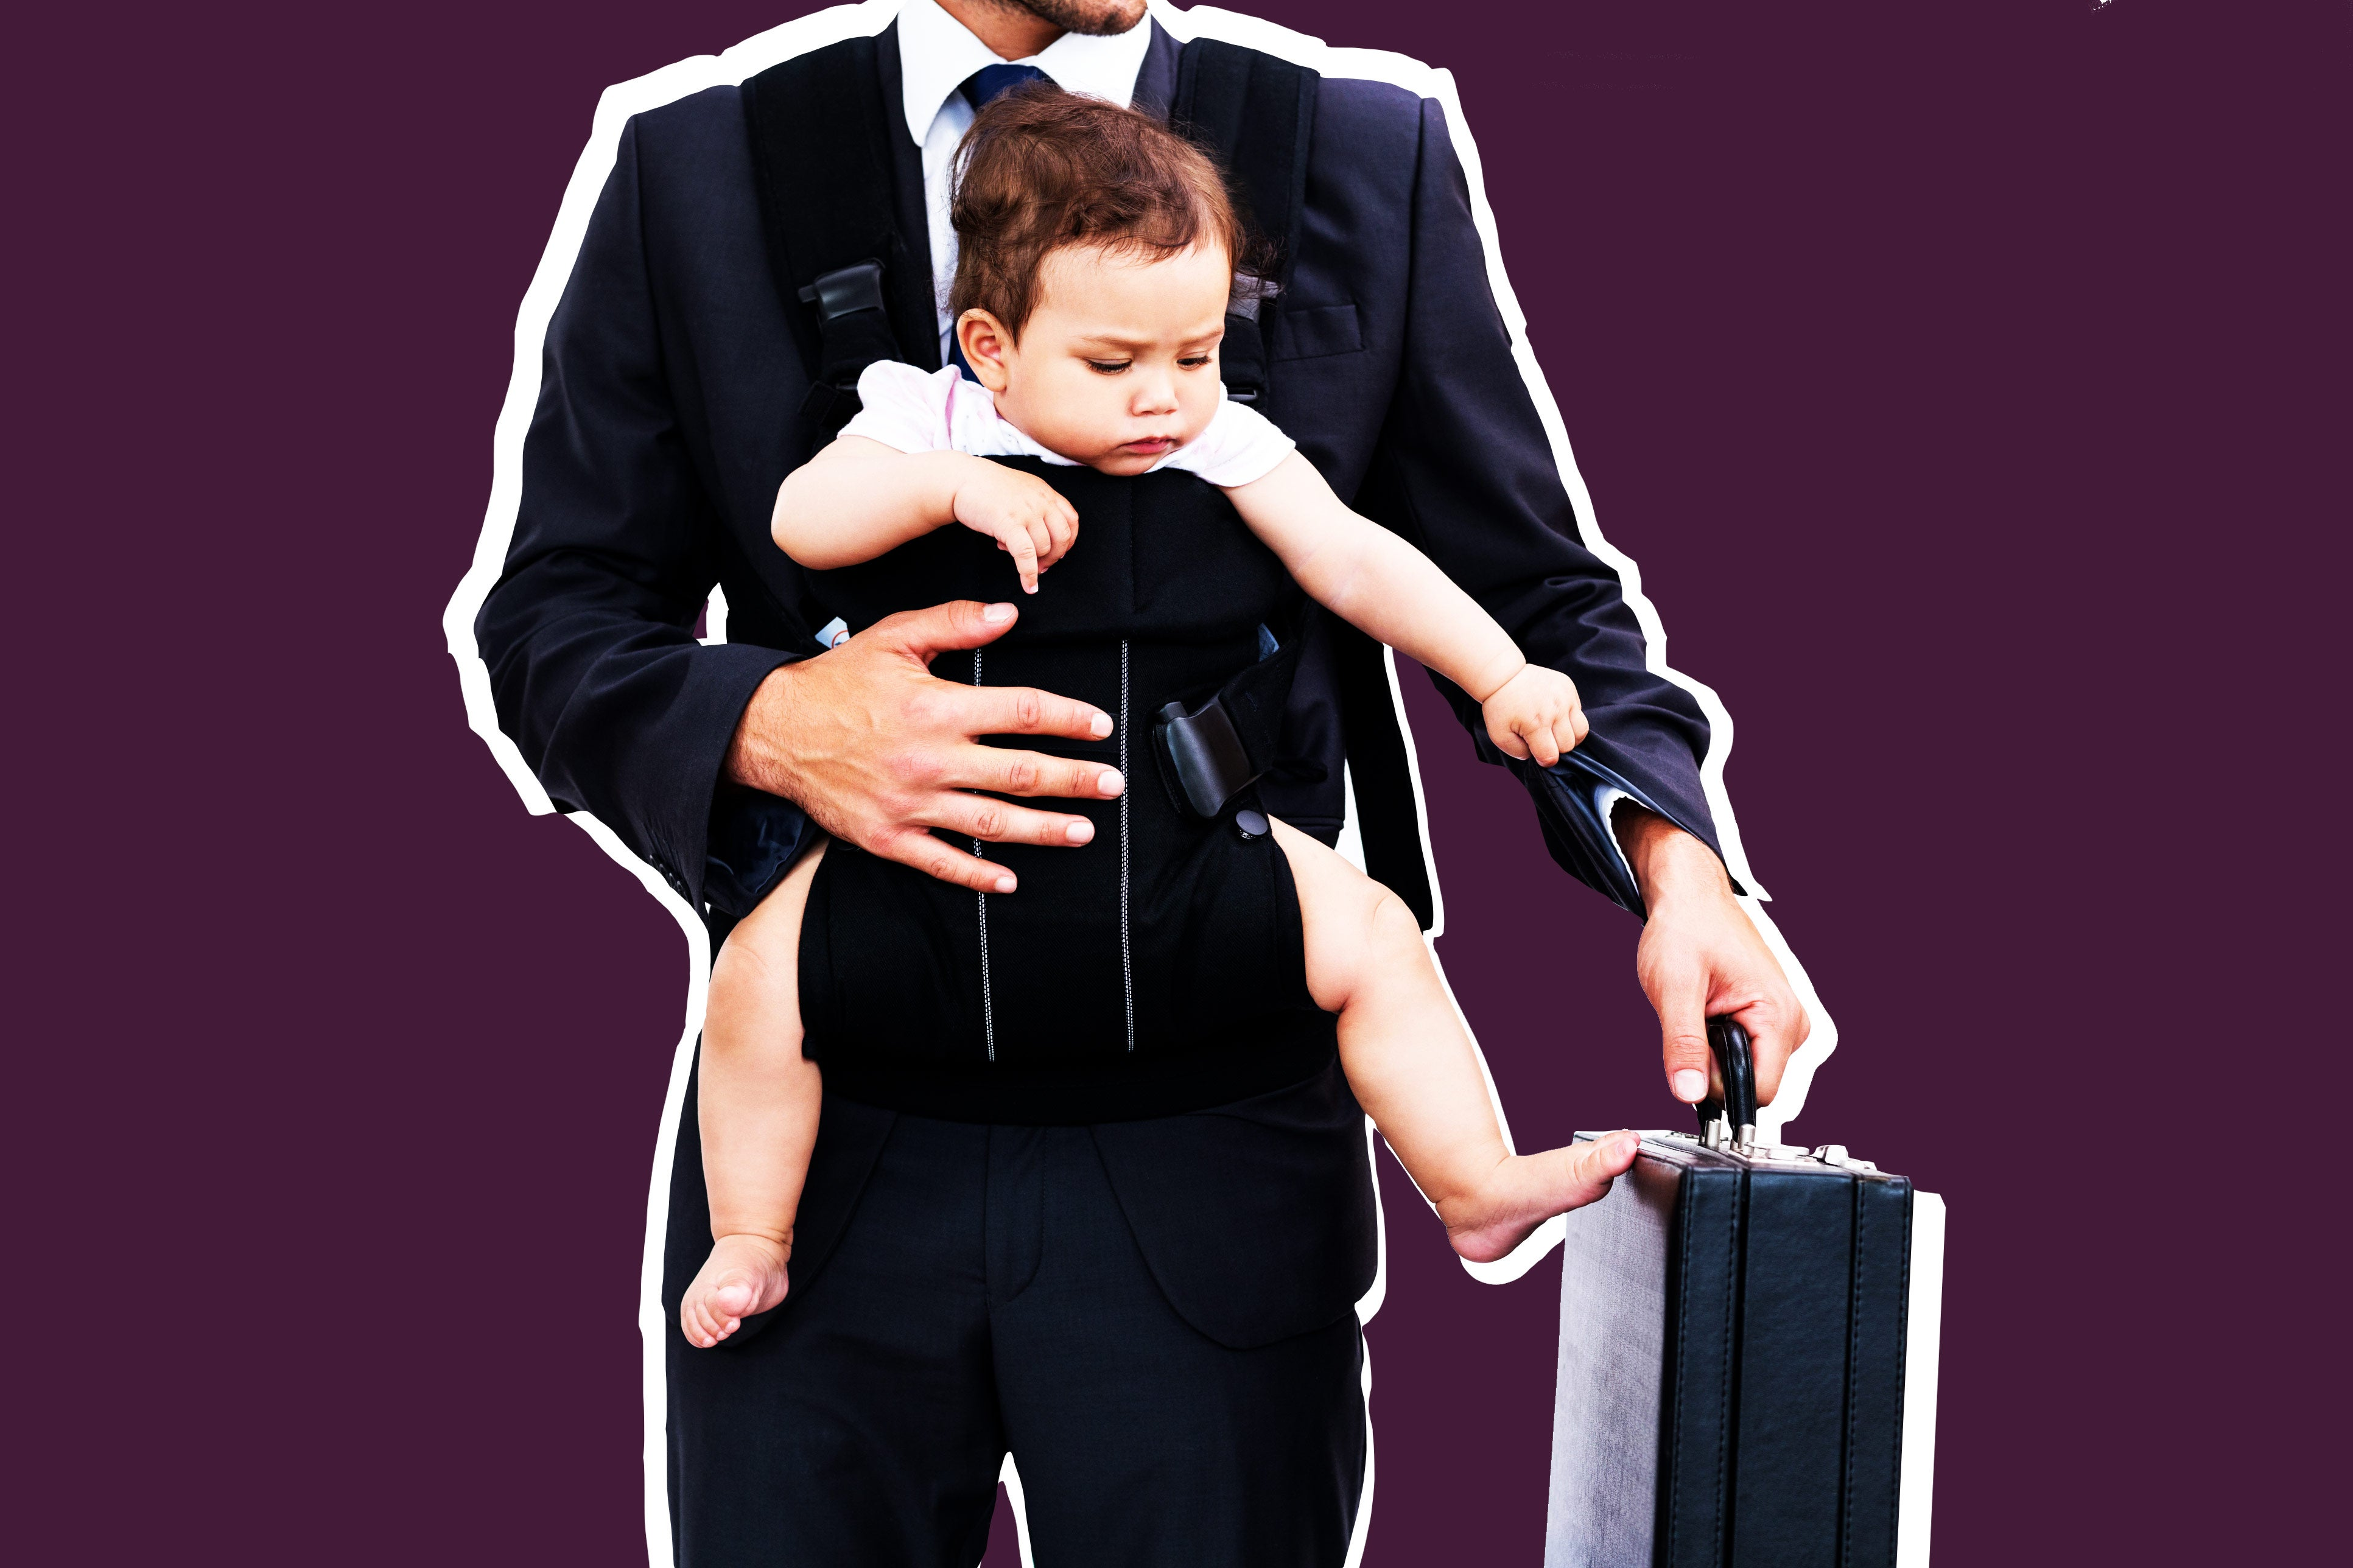 Young father carrying baby and holding briefcase.